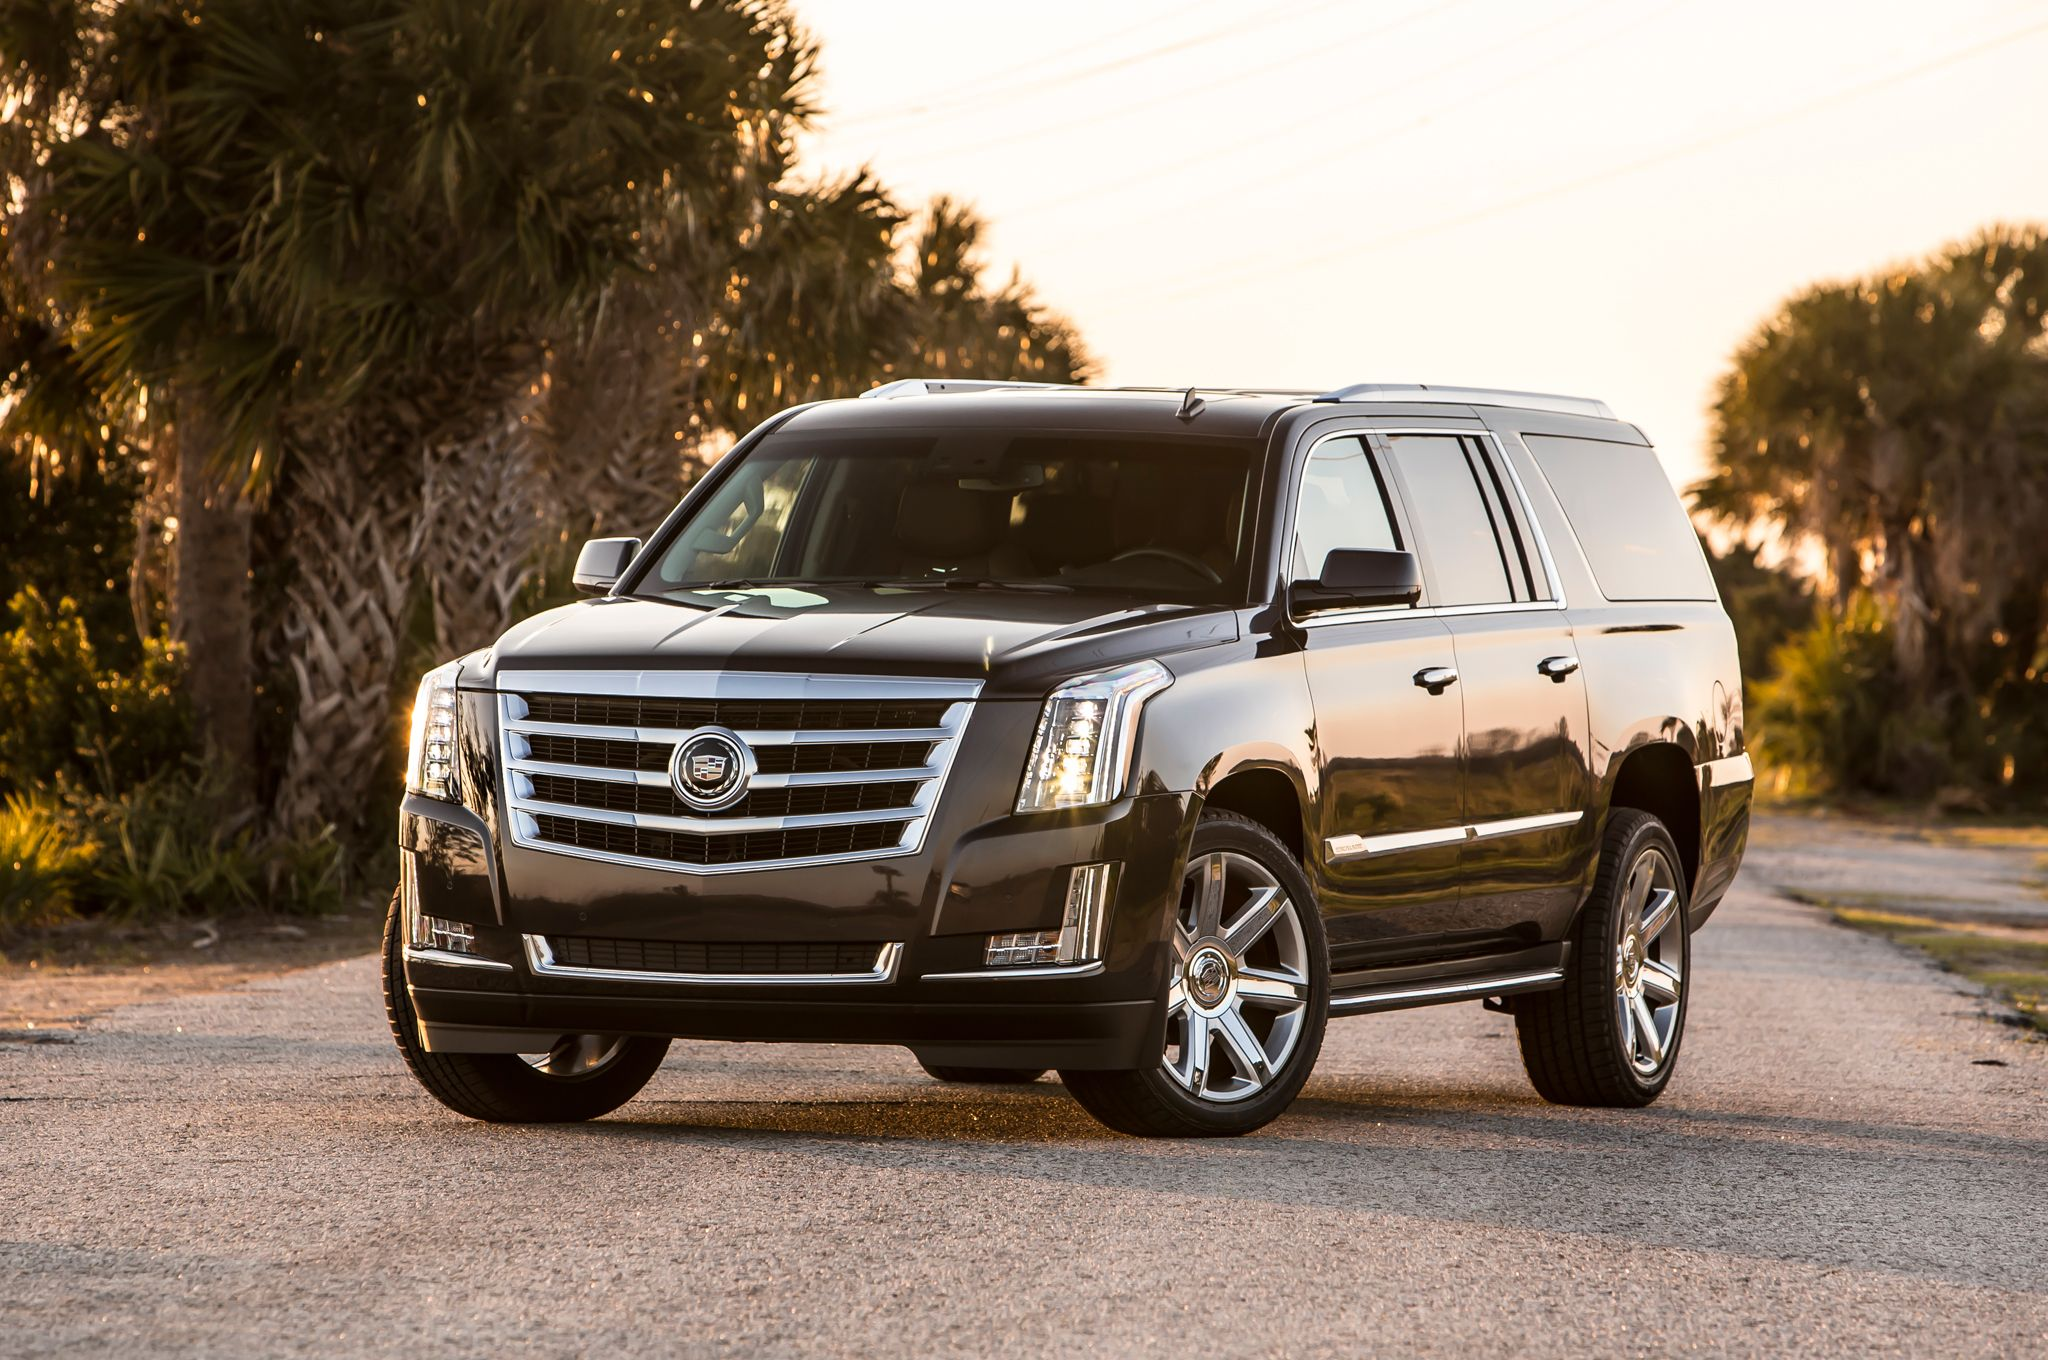 Cadillac escalade esv platinum 5 passenger class at its best contact bay limousine when first class